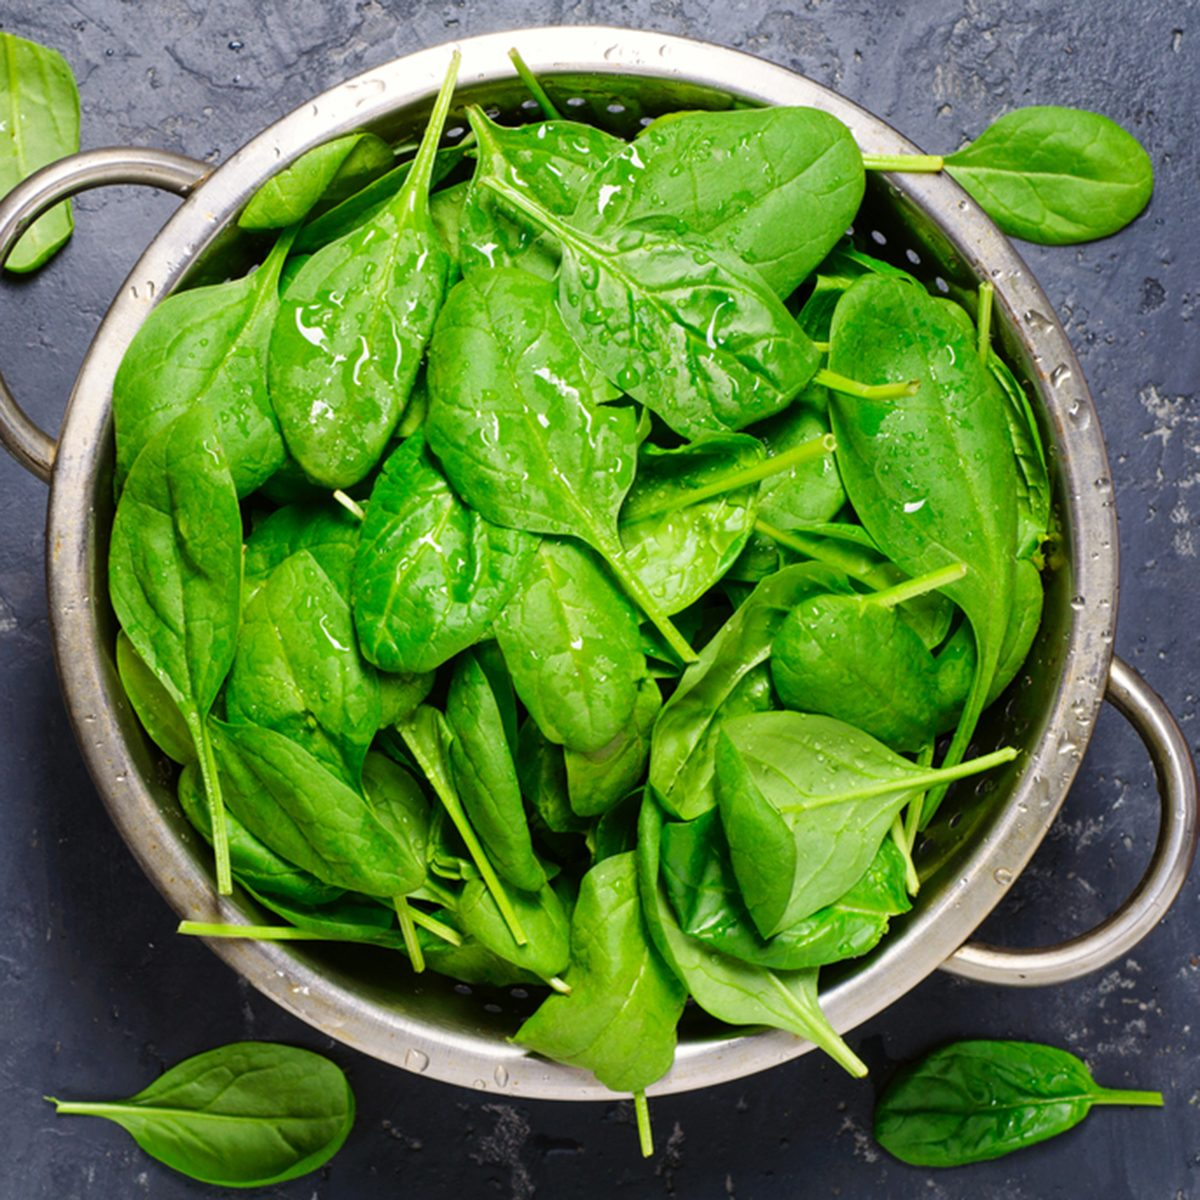 Washed fresh mini spinach in a colander on the old concrete table